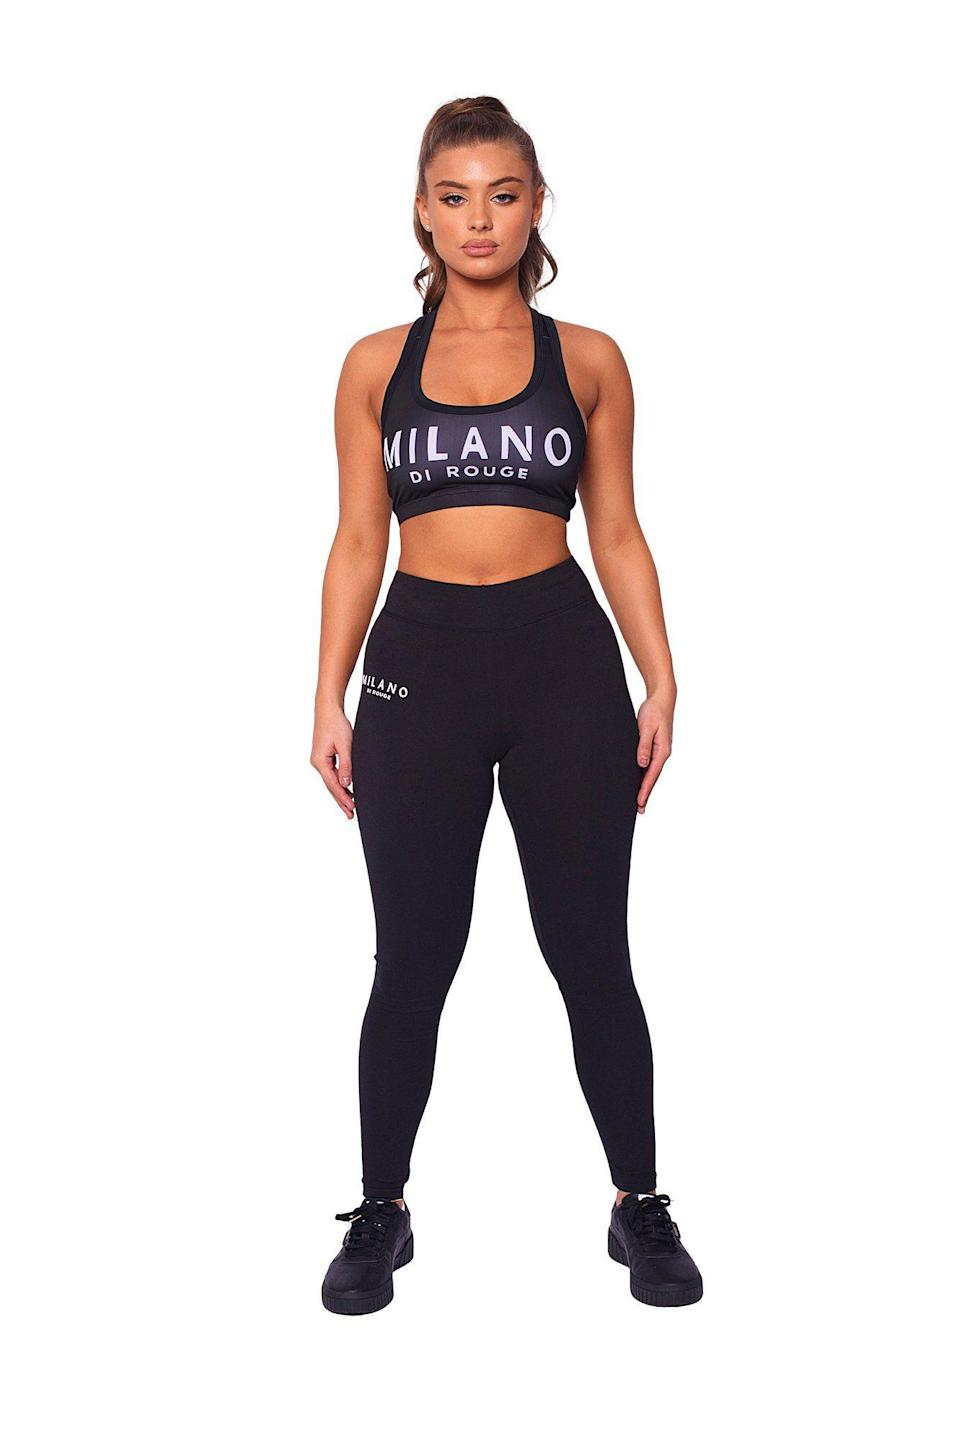 """<p><strong>Milano di Rouge</strong></p><p>milanodirouge.com</p><p><strong>$50.00</strong></p><p><a href=""""https://shop.milanodirouge.com/collections/womens-leggings/products/loe-leggings-2-0"""" rel=""""nofollow noopener"""" target=""""_blank"""" data-ylk=""""slk:Shop Now"""" class=""""link rapid-noclick-resp"""">Shop Now</a></p><p>Made from a mid-weight knit fabric, these high-waisted pull-on winter leggings run from sizes XS to 3XL. Shop local and support BIPOC brands. </p>"""